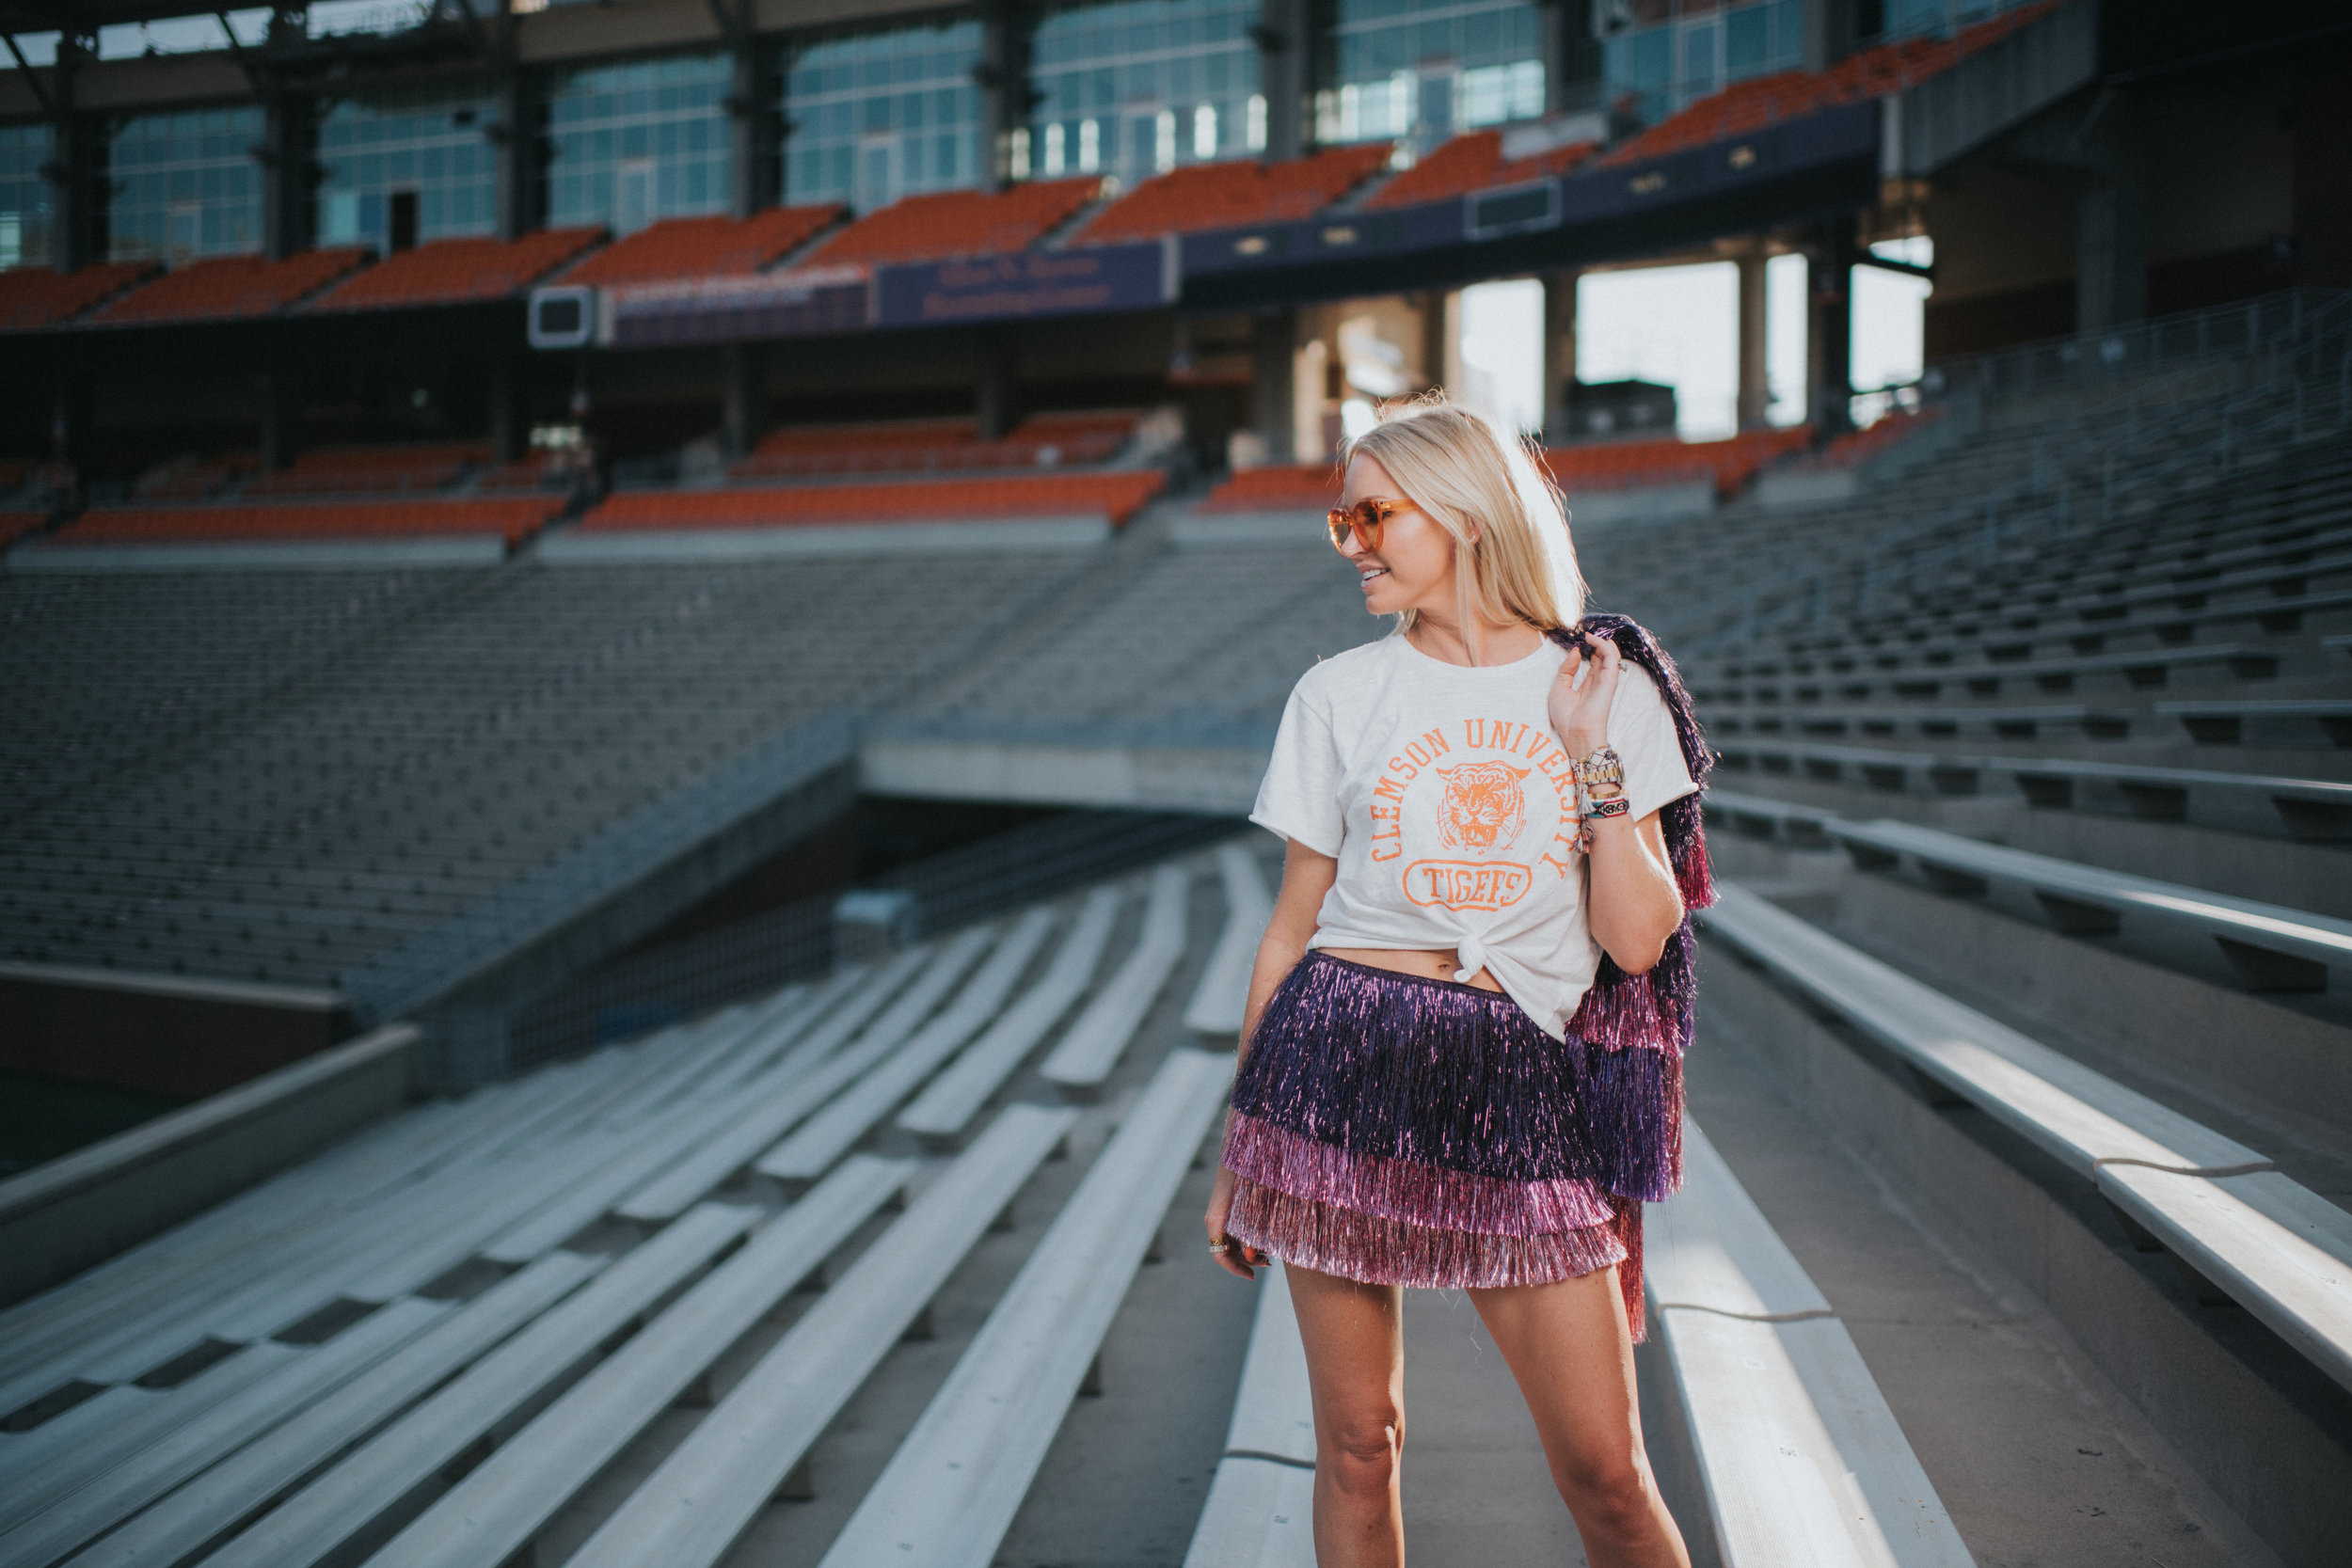 The Clemson t-shirt I have styled here, is from iibrunettes in Charleston. - It comes in gray or white and I am wearing the medium, so I can tie it up in a loose knot.Here's a link to their Insta page. They ship!